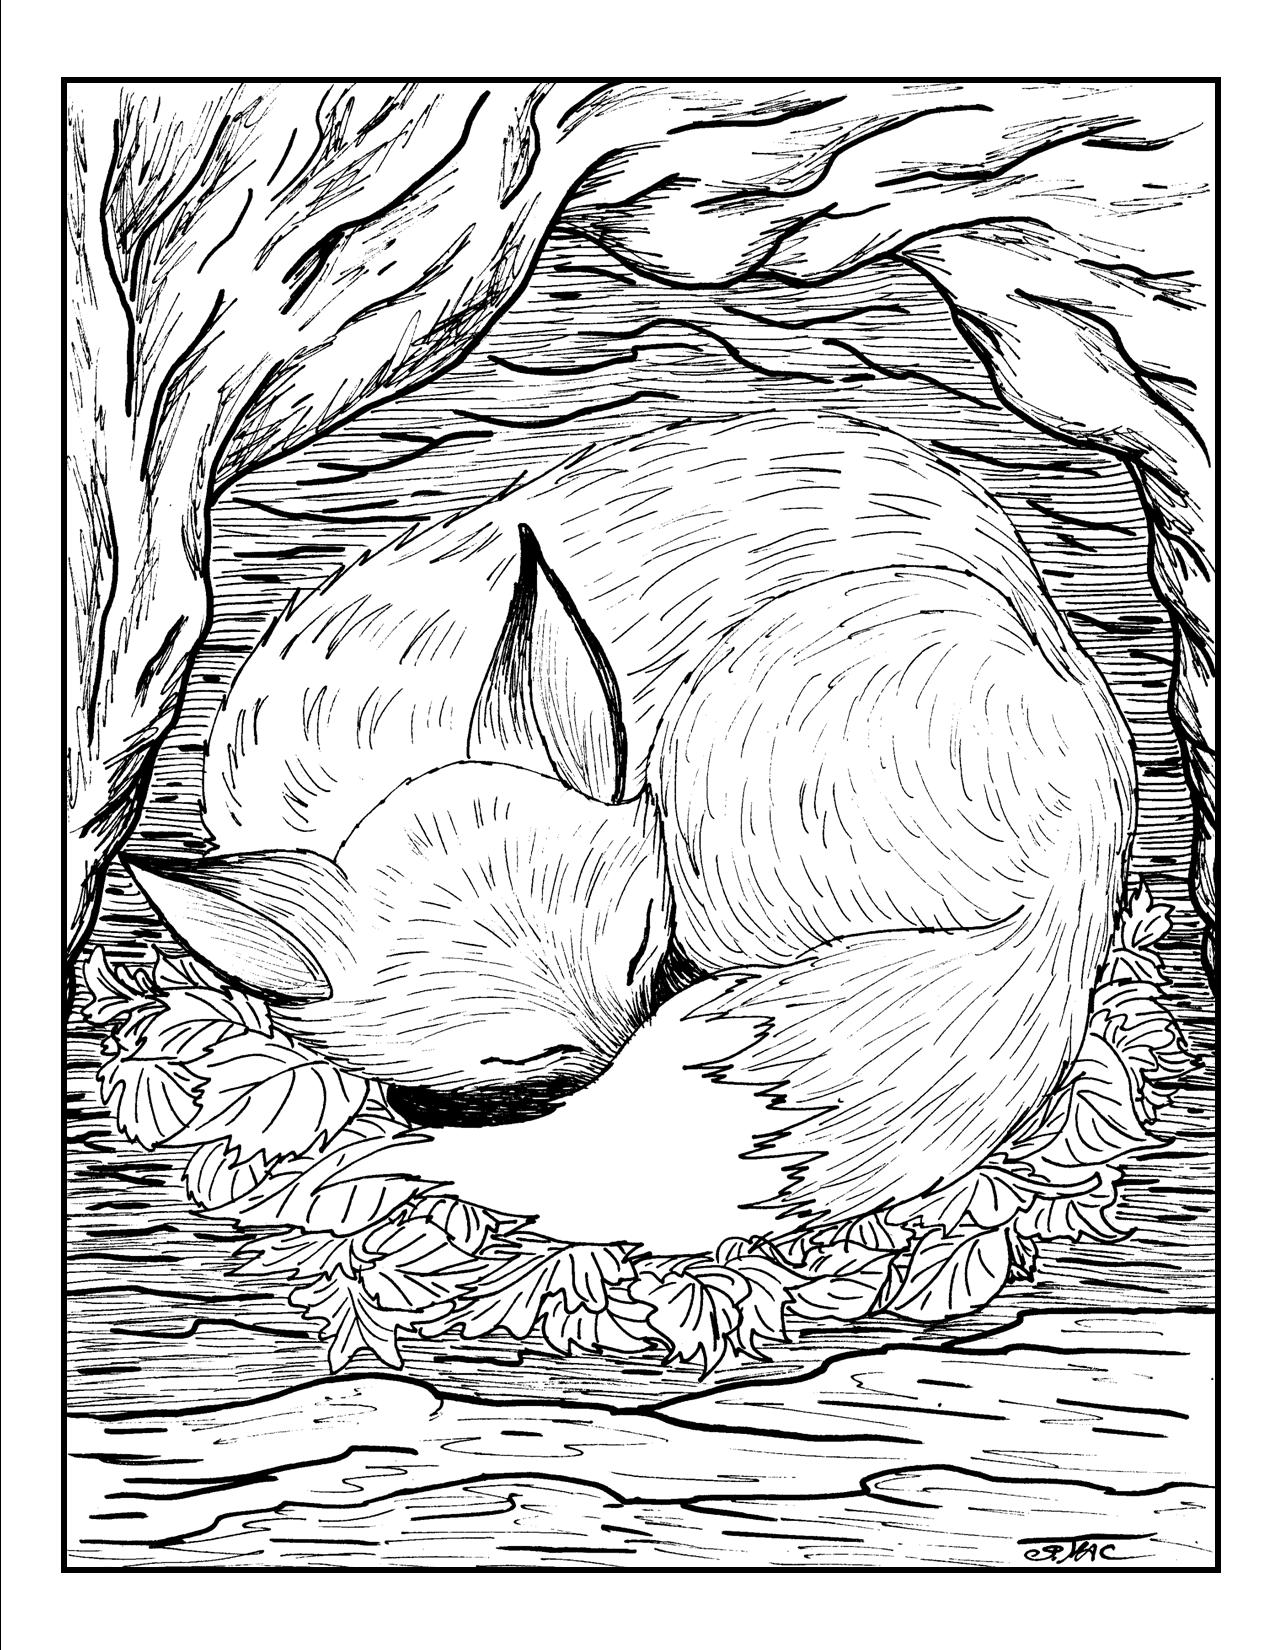 advanced animal coloring pages advanced animal coloring pages coloring pages animal advanced pages coloring